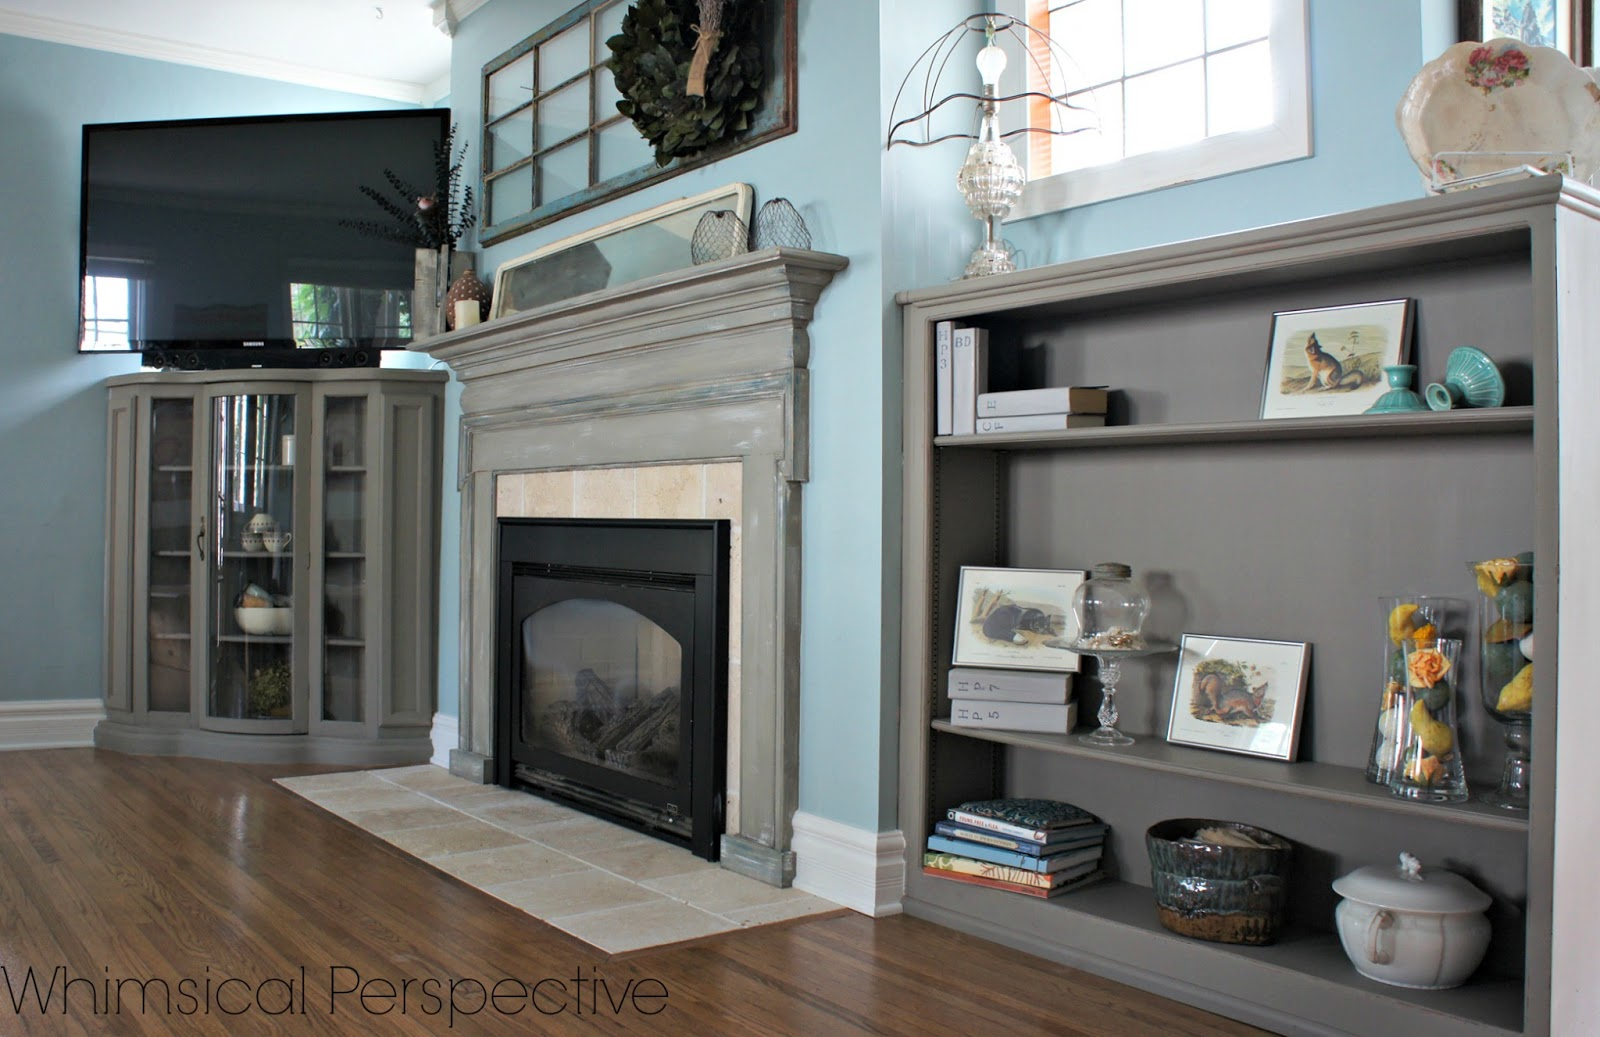 whimsical perspective living room reveal part 2